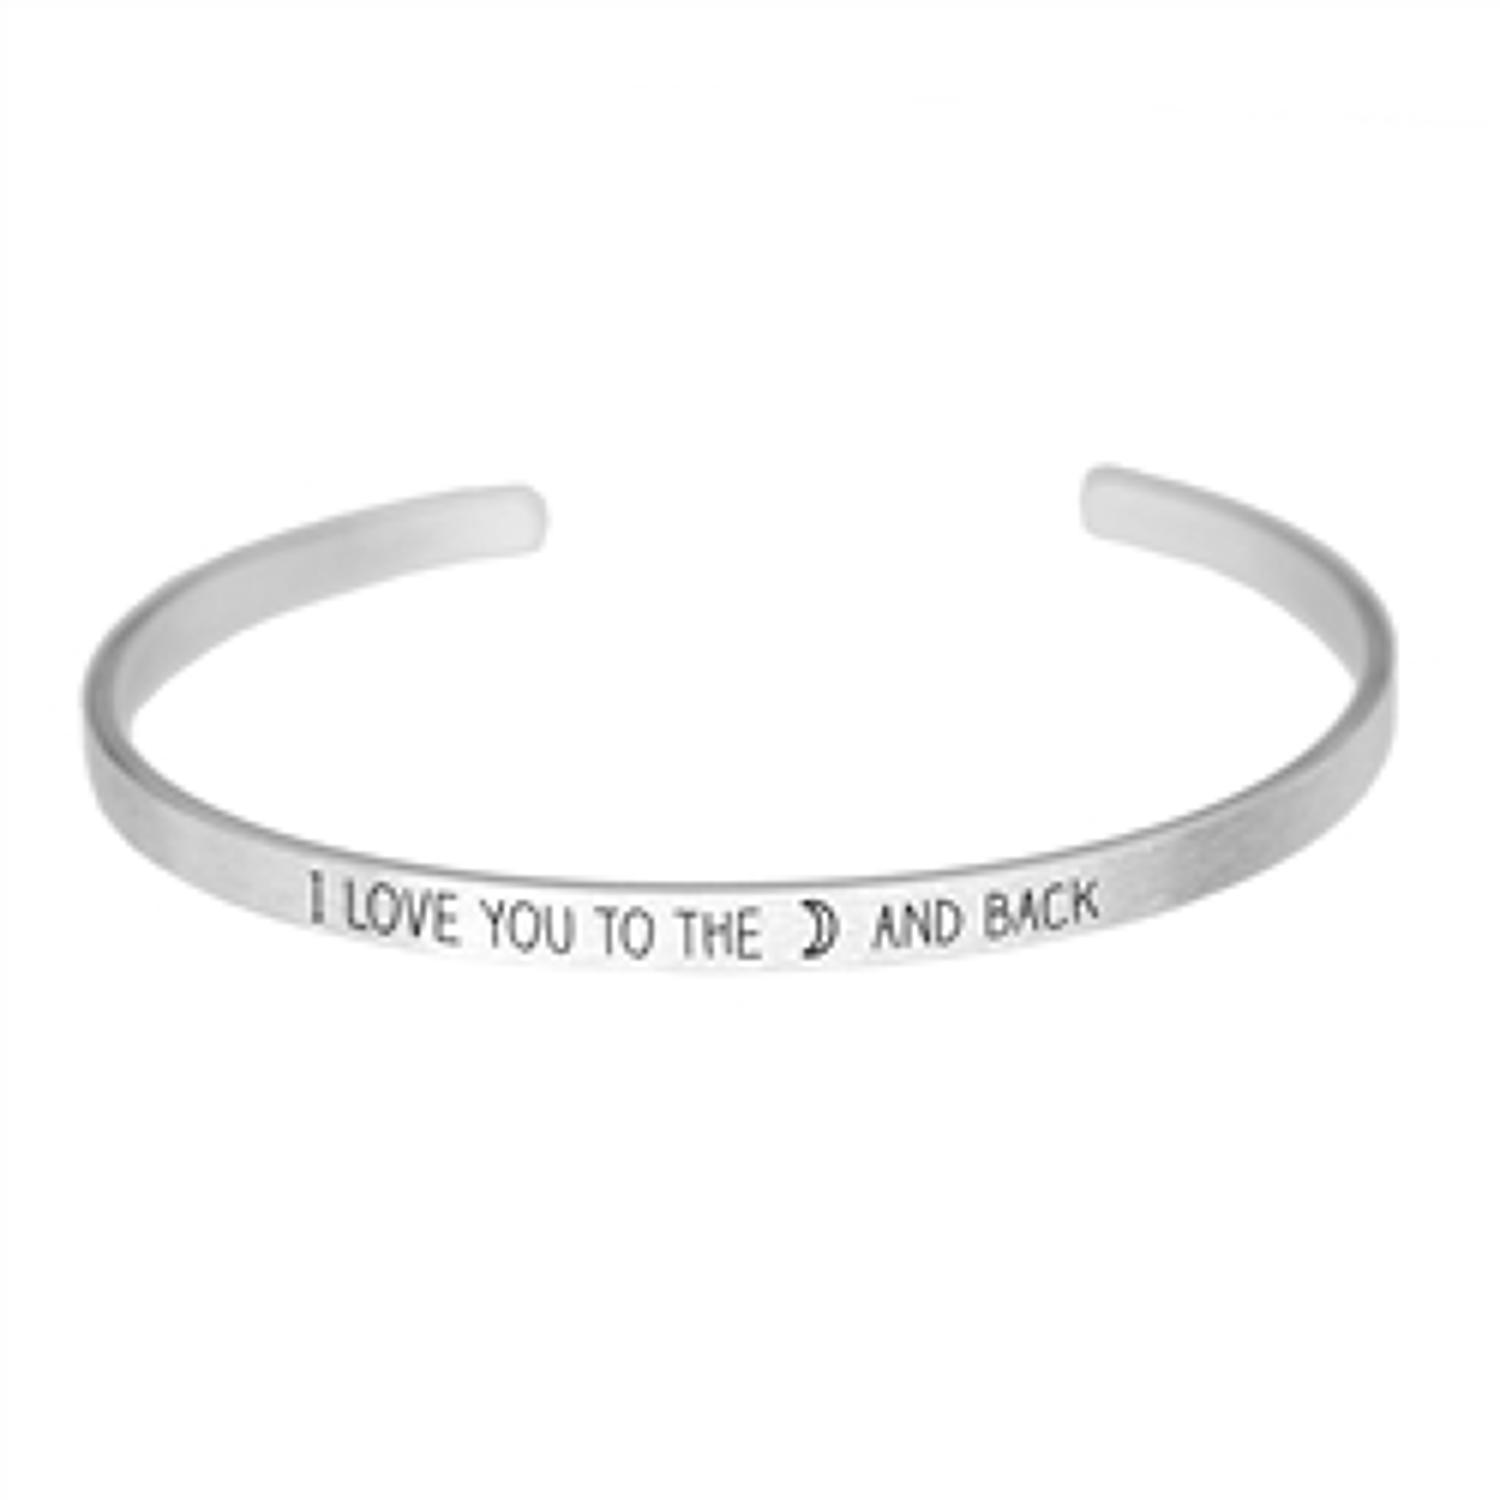 White Leaf - Love you to the moon and back silver finish bangle